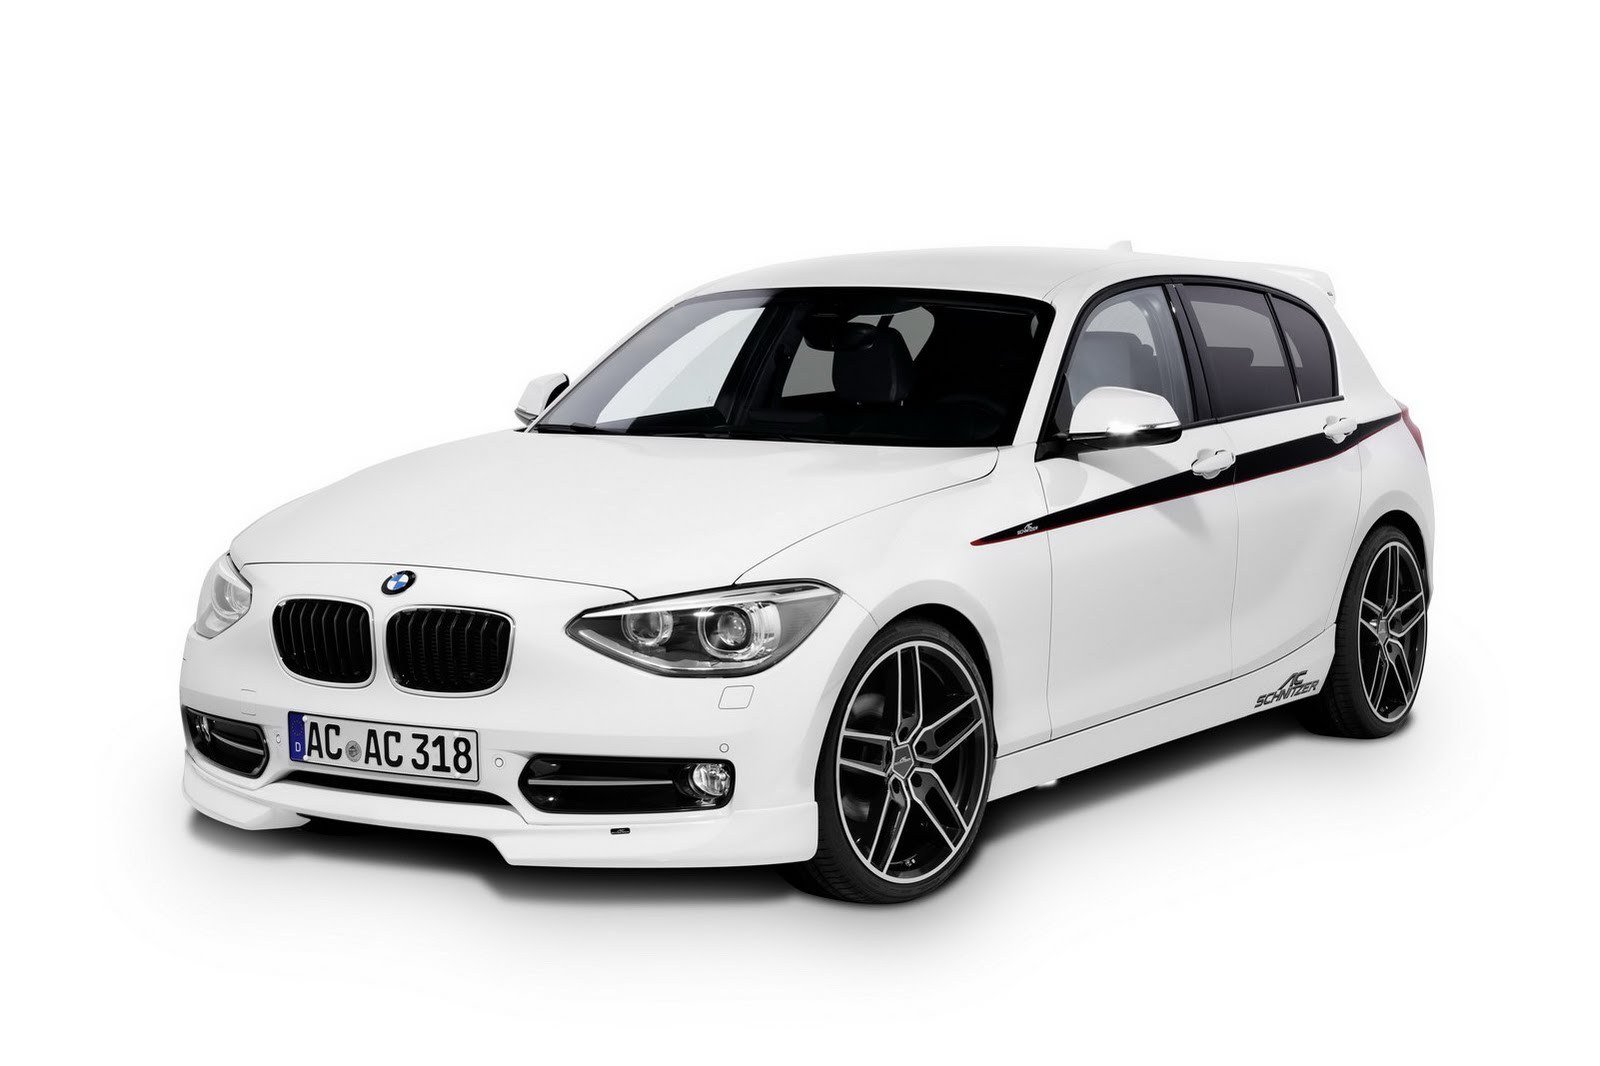 2012 bmw 1 series f20 by ac schnitzer top speed. Black Bedroom Furniture Sets. Home Design Ideas